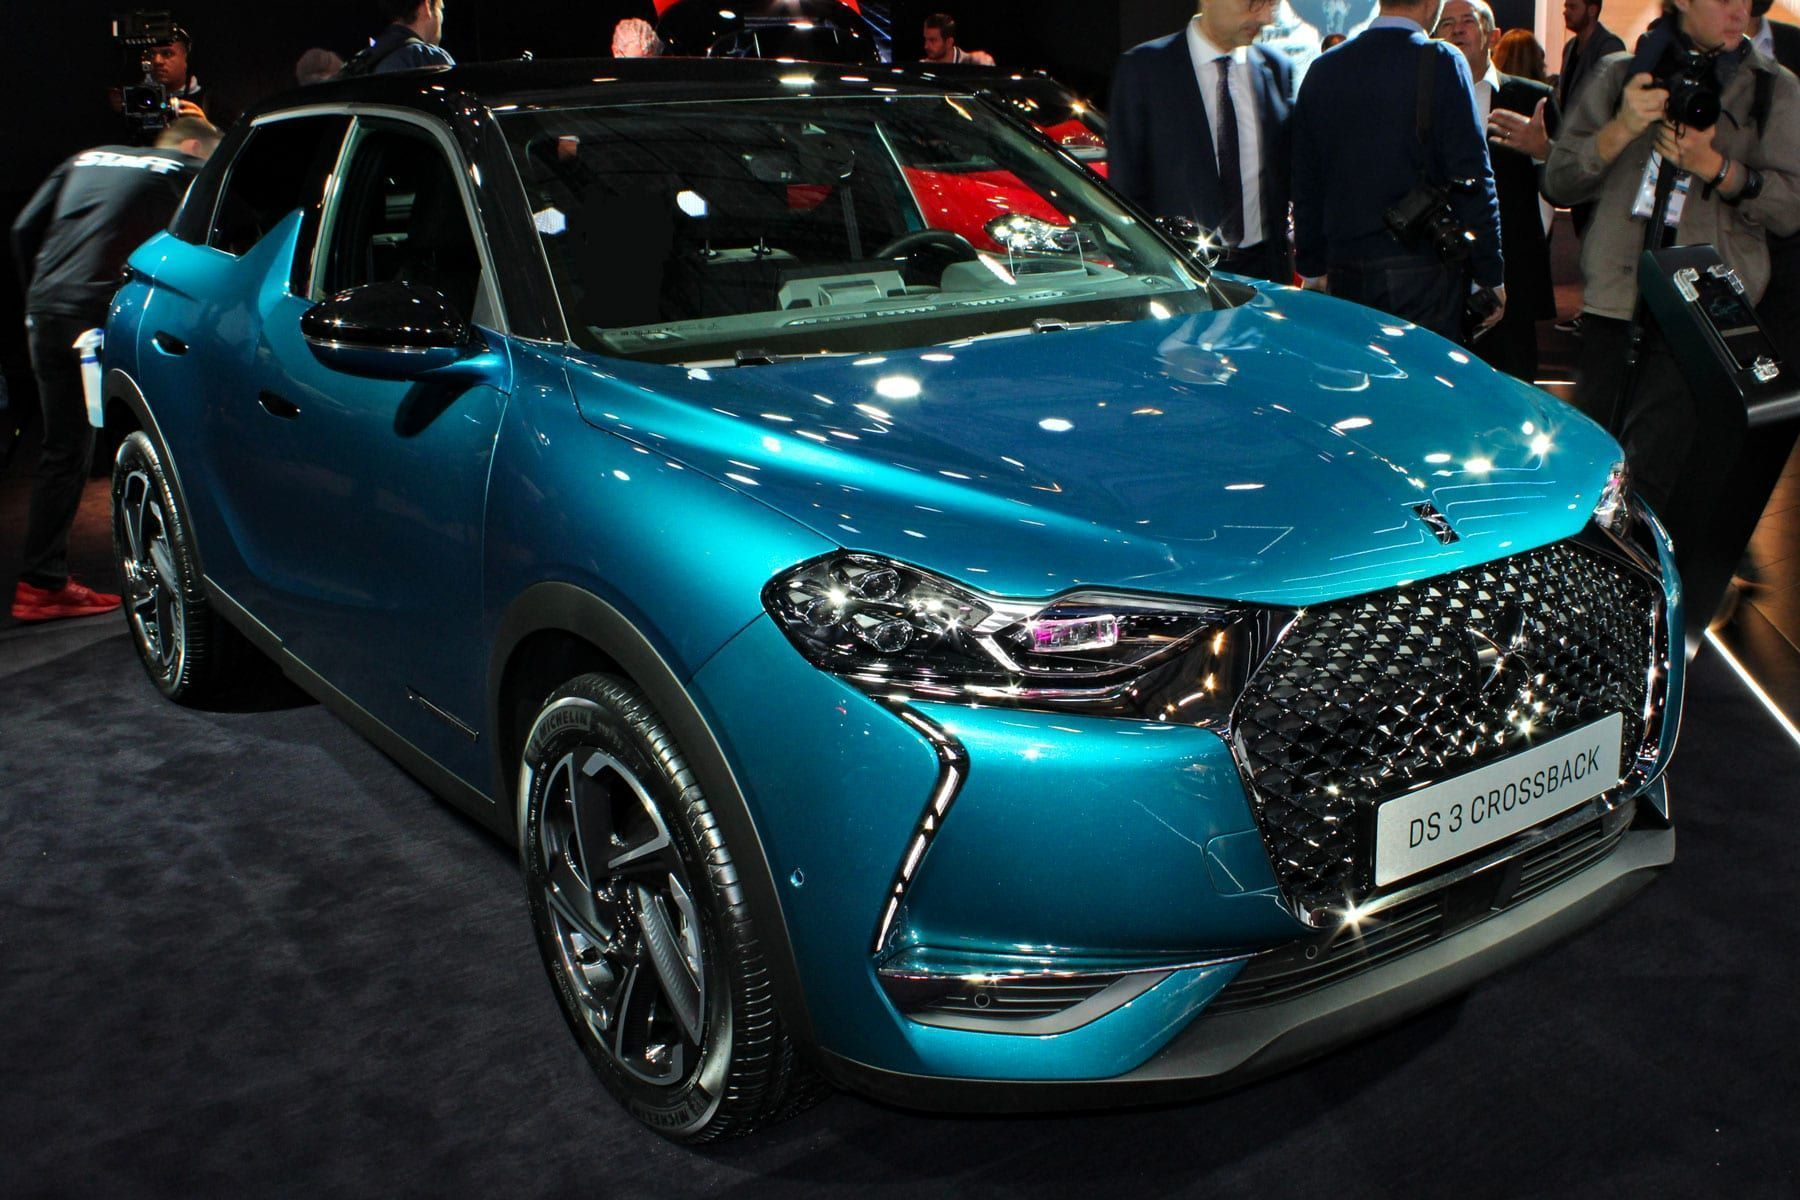 Crossover DS3 Crossback